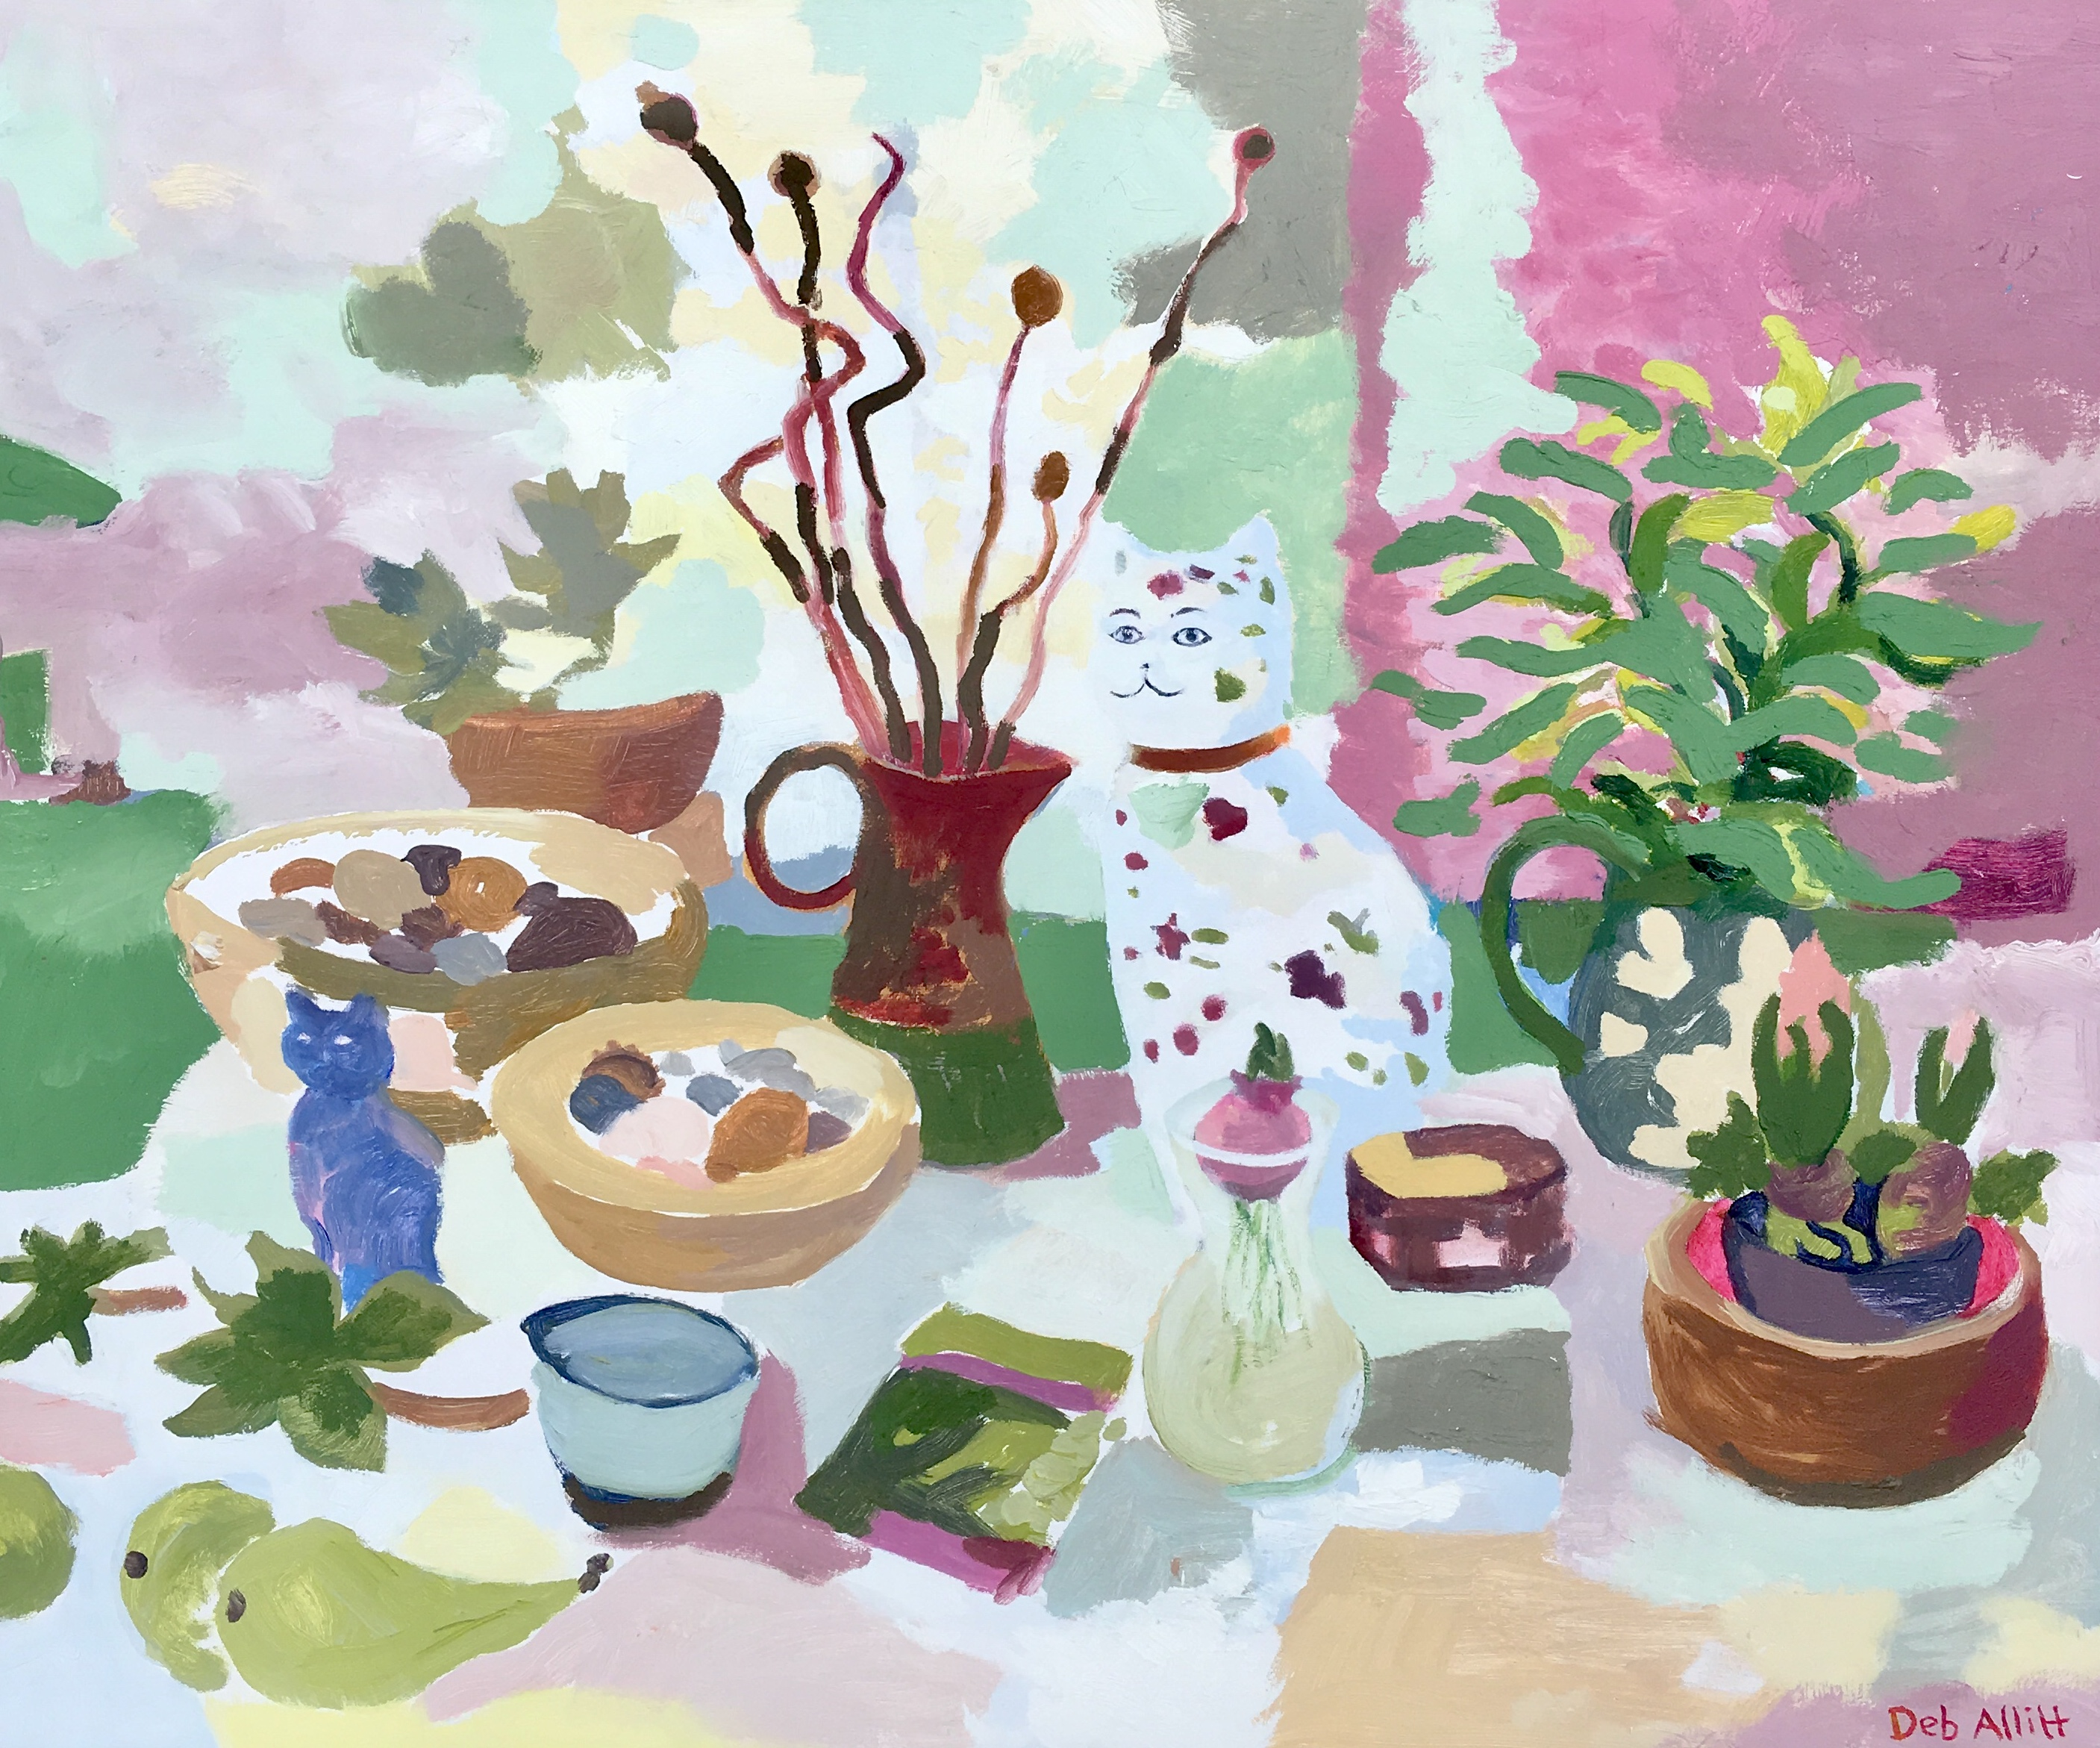 Still Life with China Cat. Oil on canvas. 50 x 60 cm